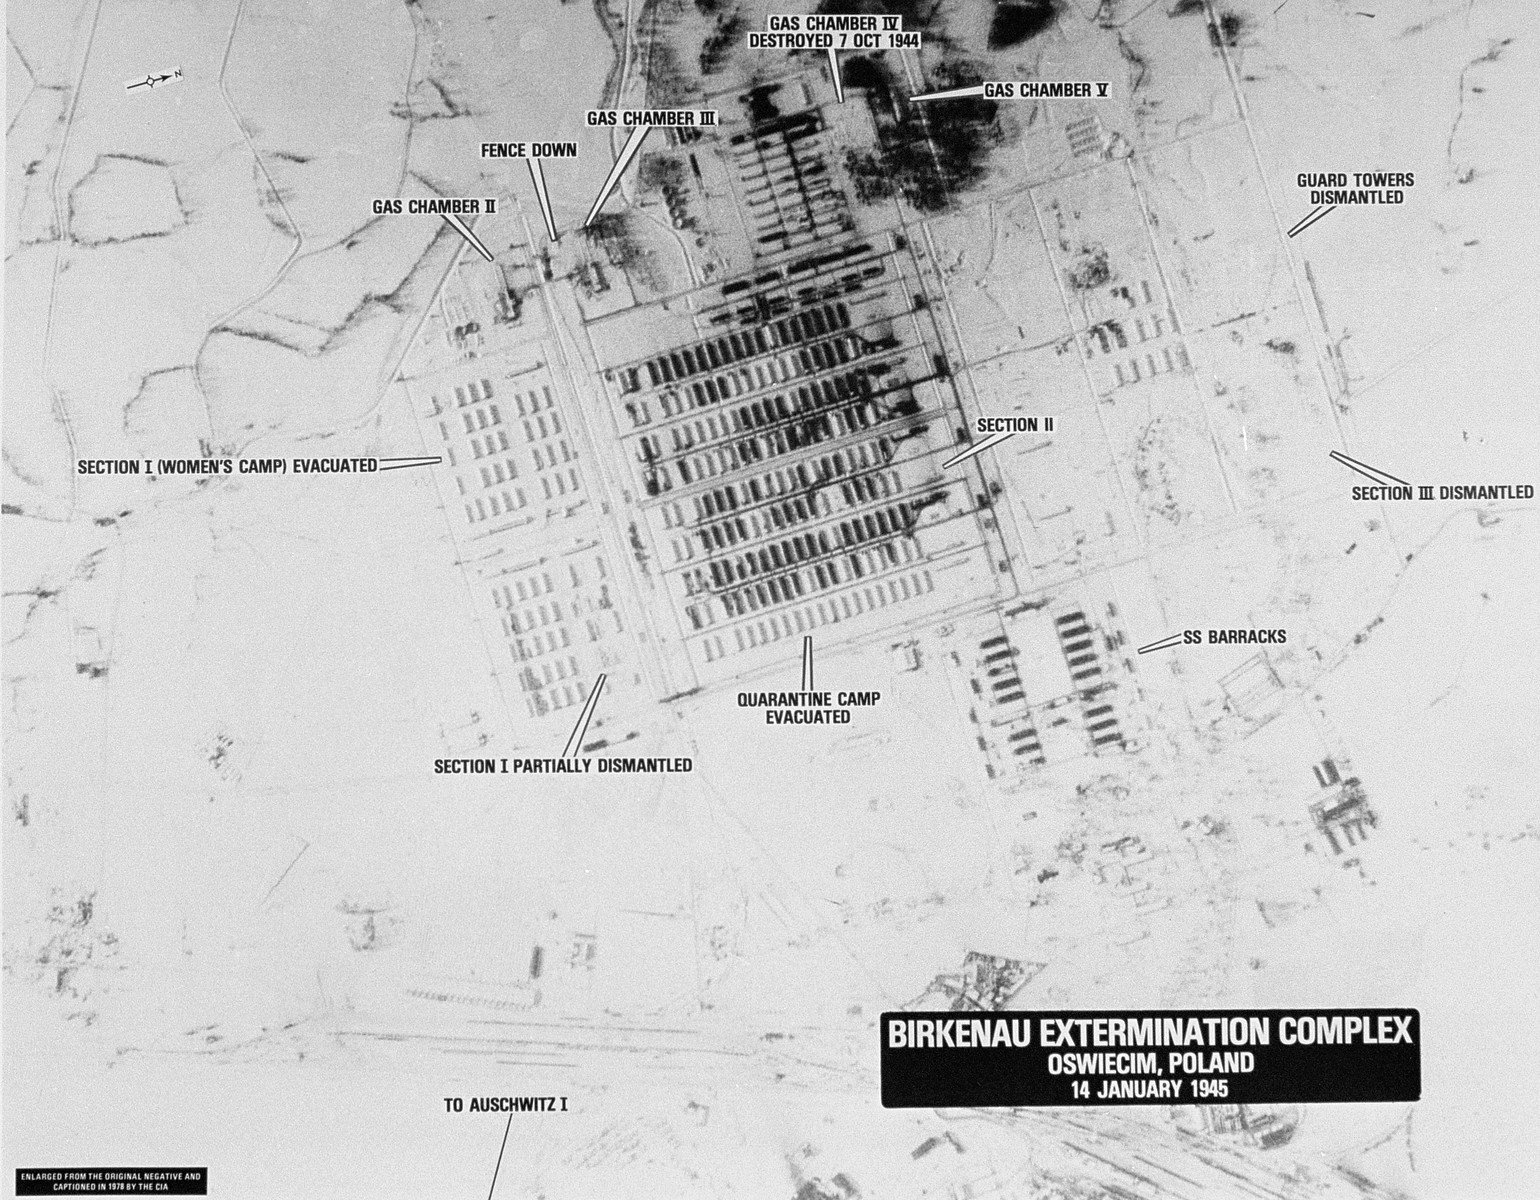 An aerial reconnaissance photograph of the Auschwitz concentration camp showing the Auschwitz II (Birkenau) camp.